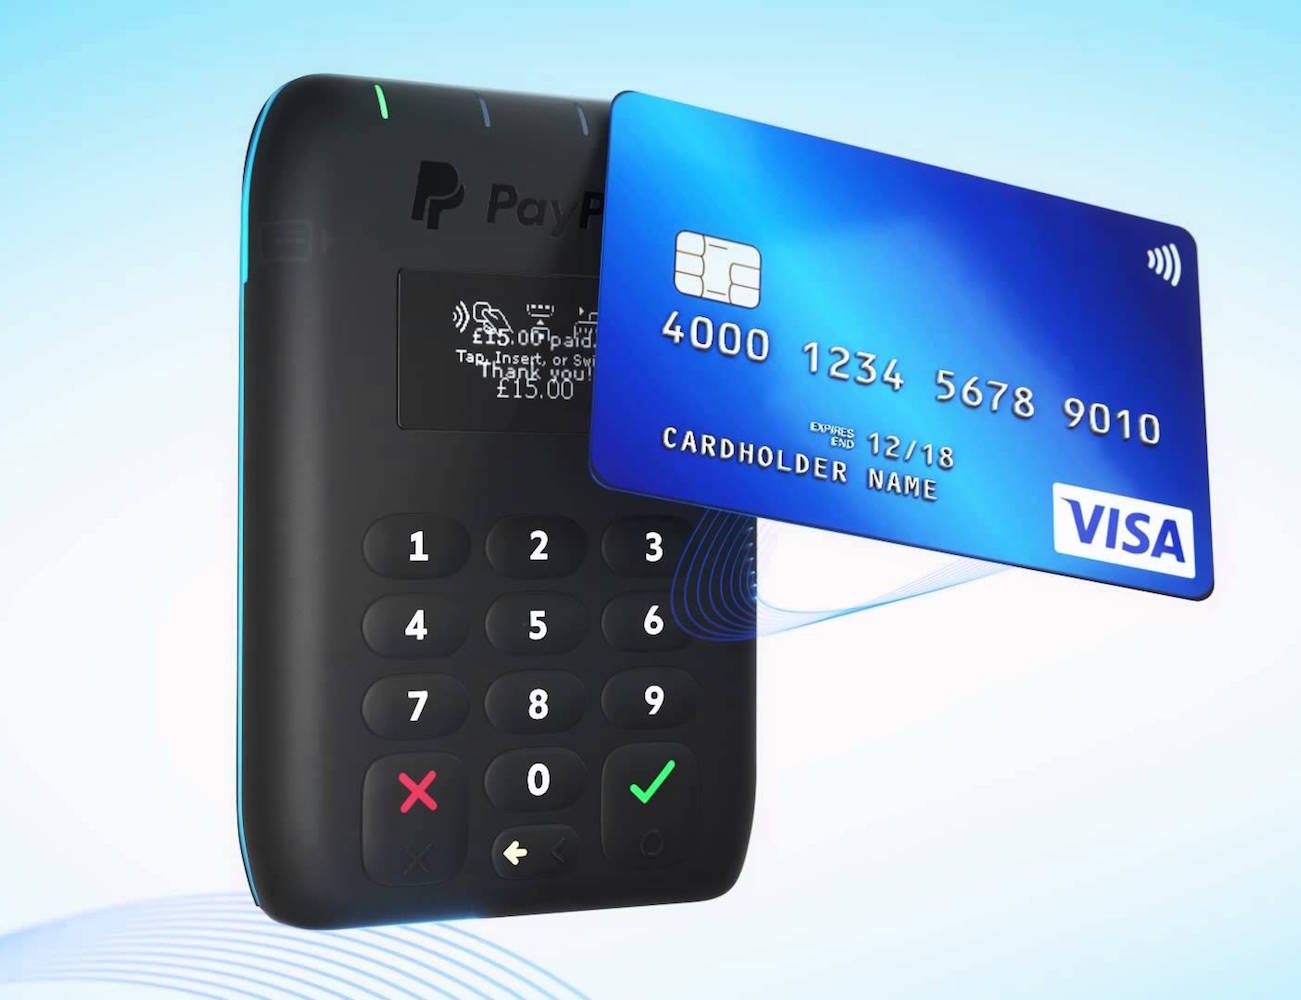 Paypal Mobile Card Reader >> Paypal Here - Mobile Card Reader » Gadget Flow